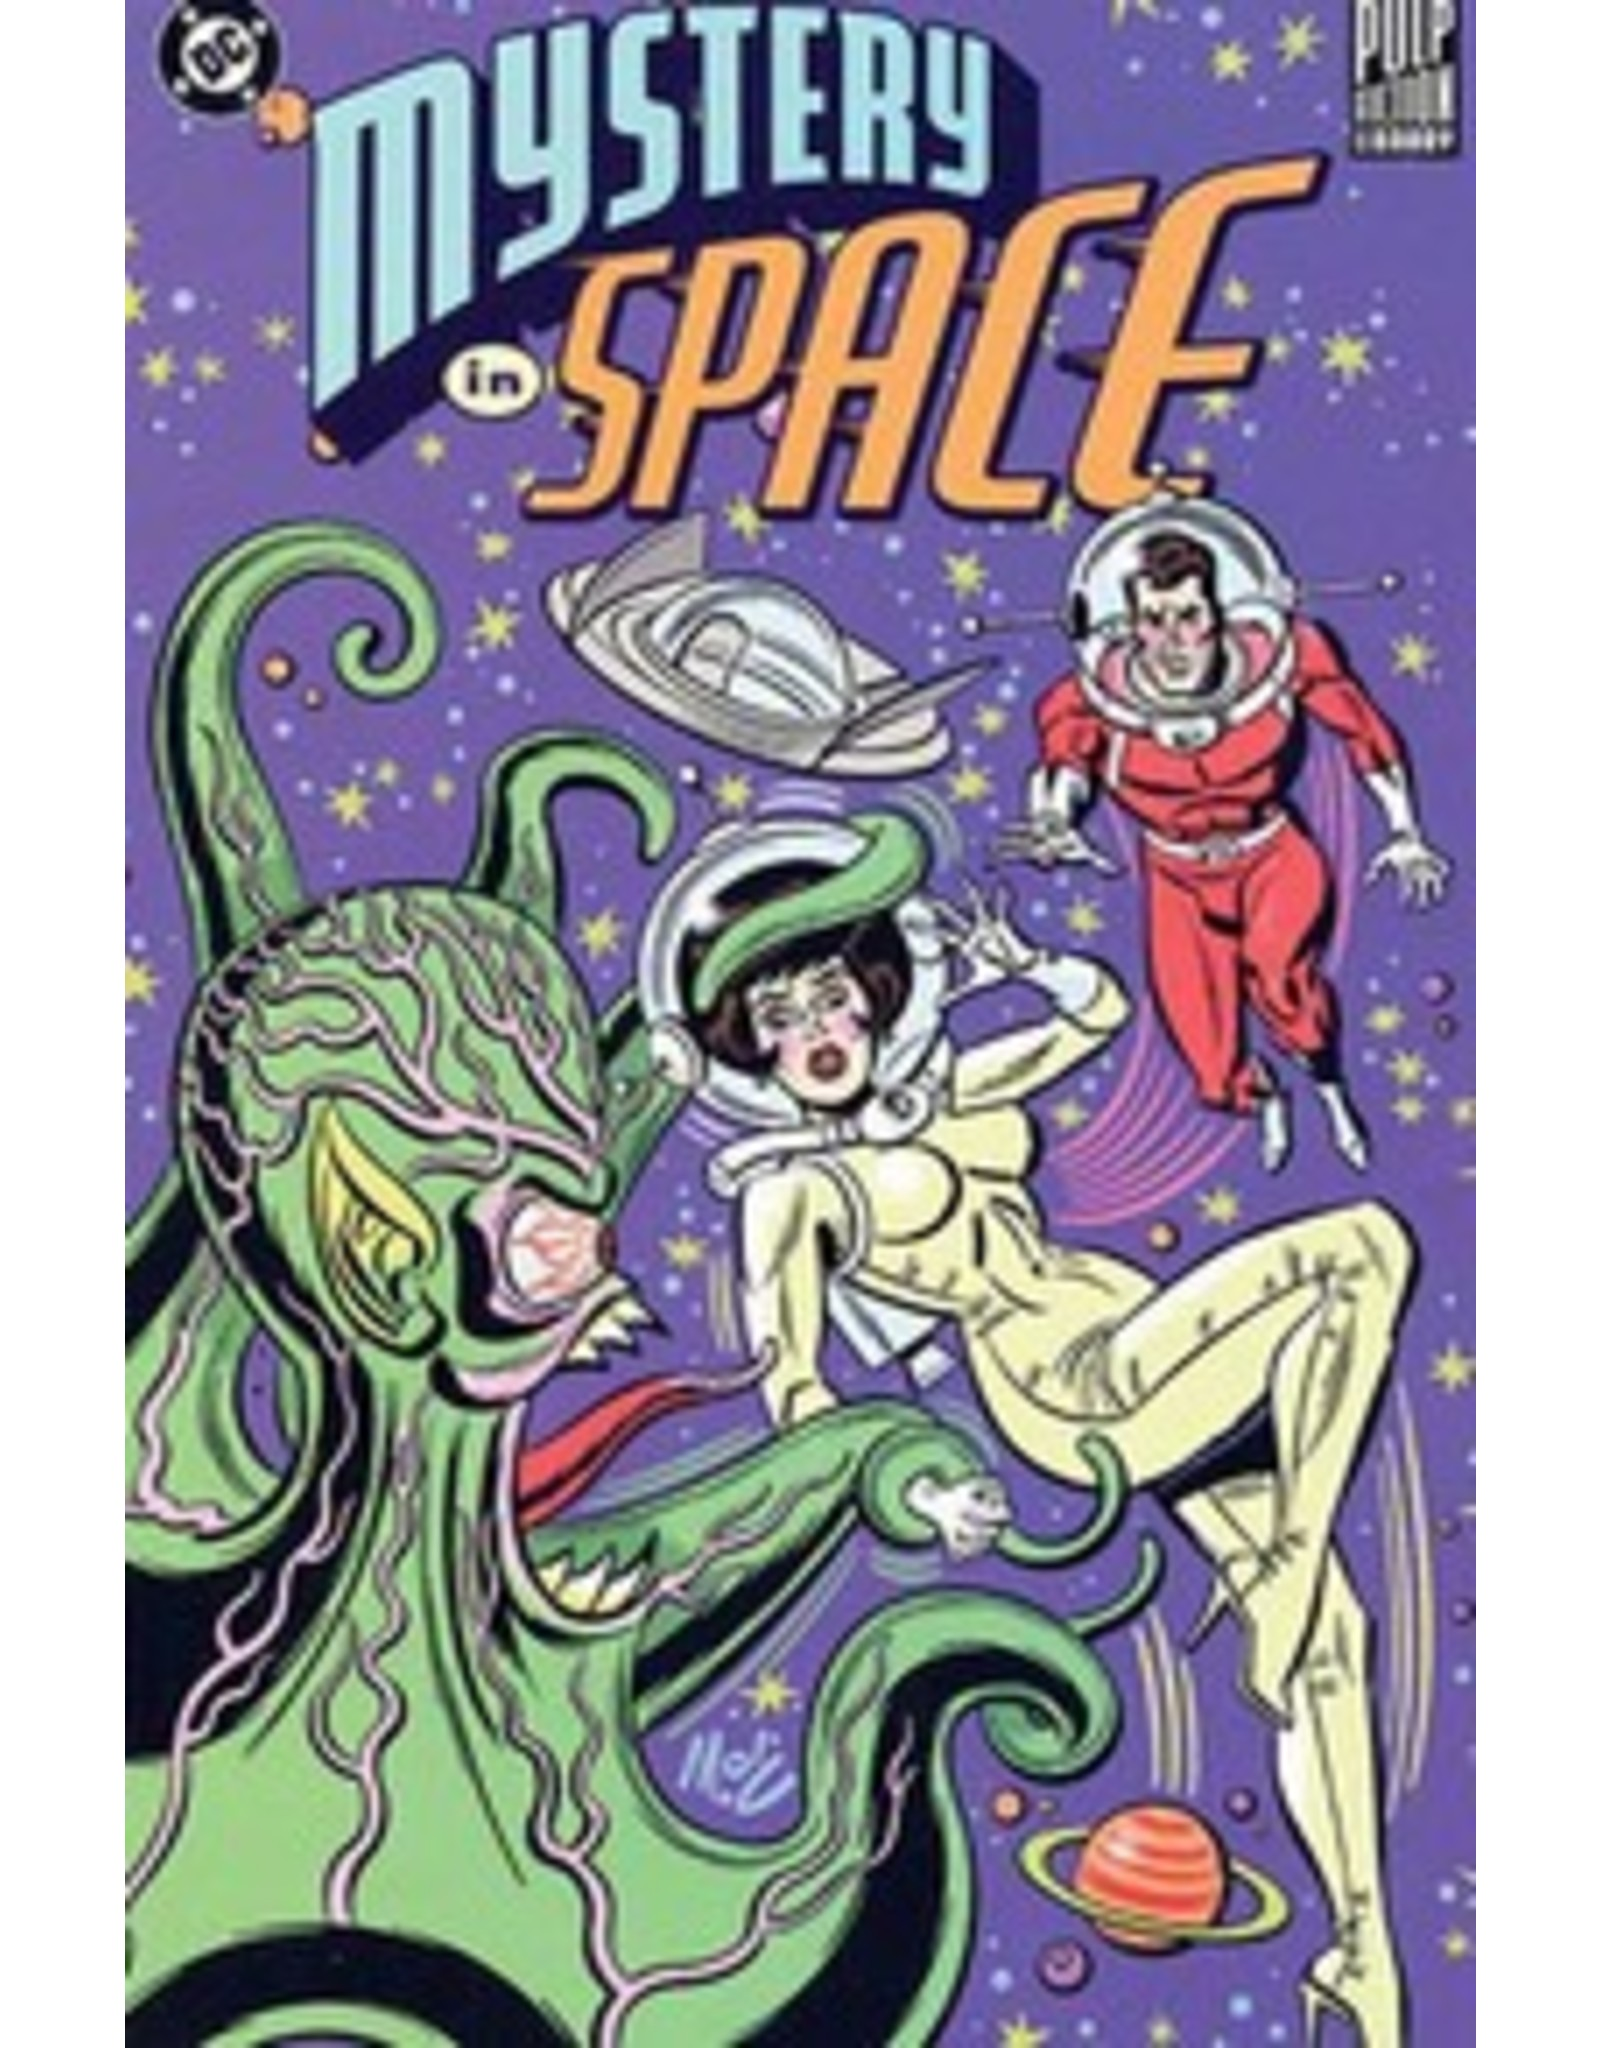 DC COMICS PULP FICTION LIBRARY MYSTERY IN SPACE TP